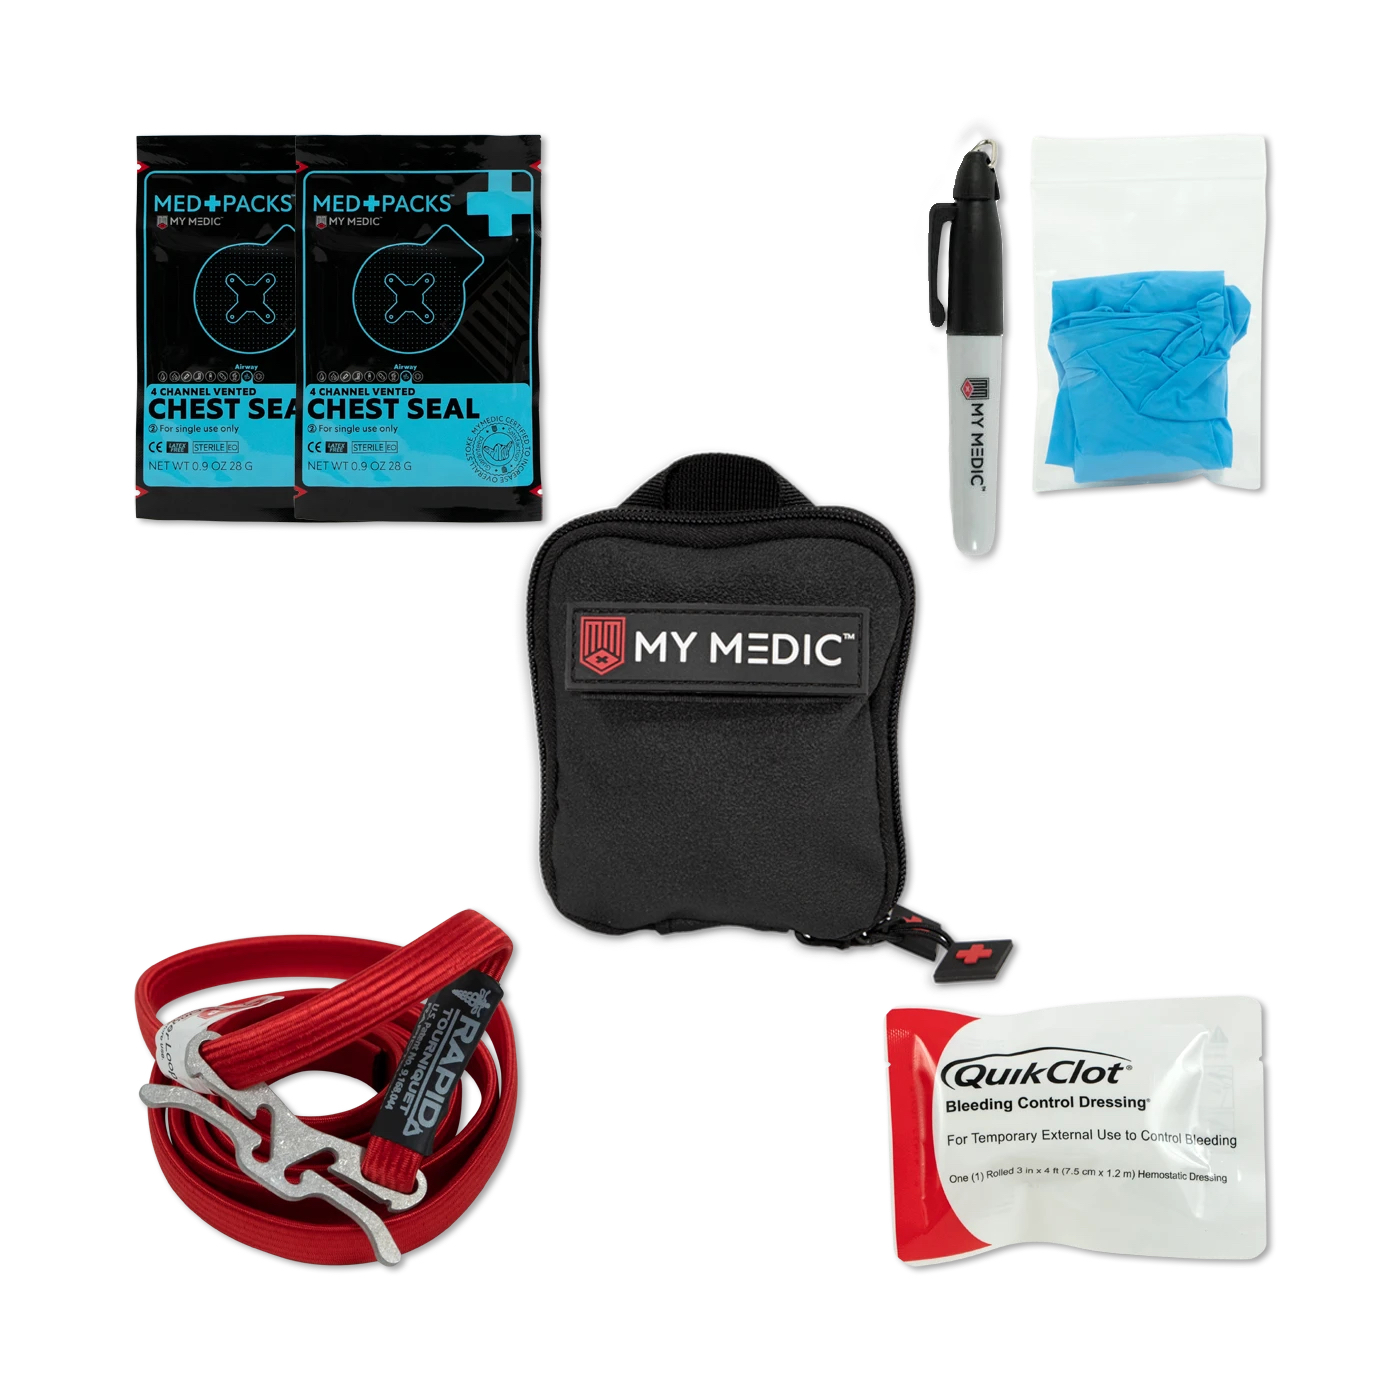 My Medic Everyday Carry first aid kit